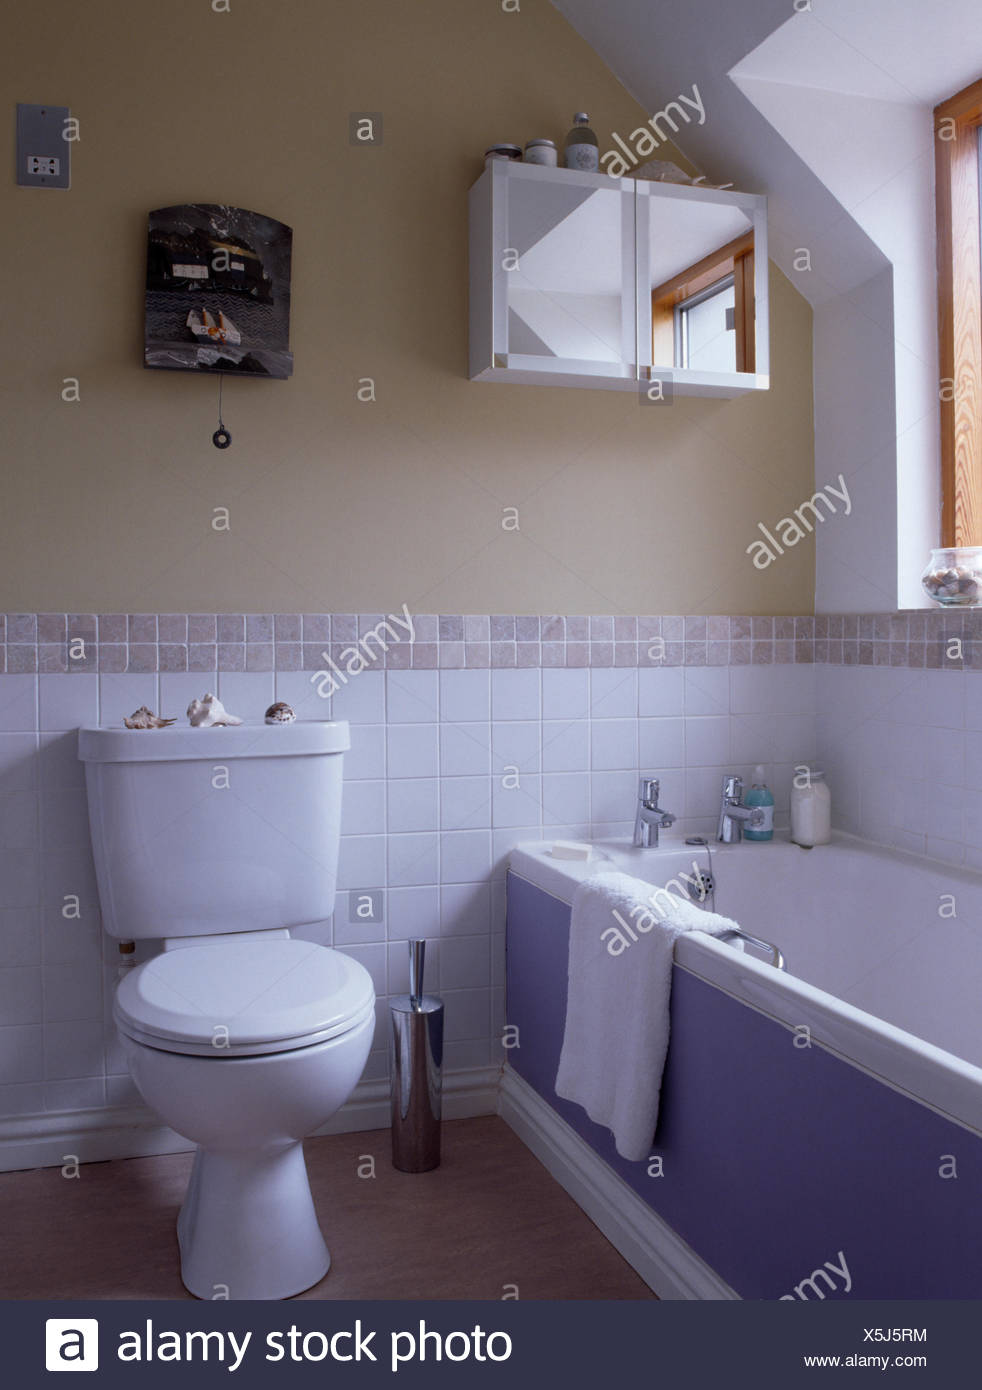 Interiors Bathroom Bath Tiling Stock Photos & Interiors Bathroom ...